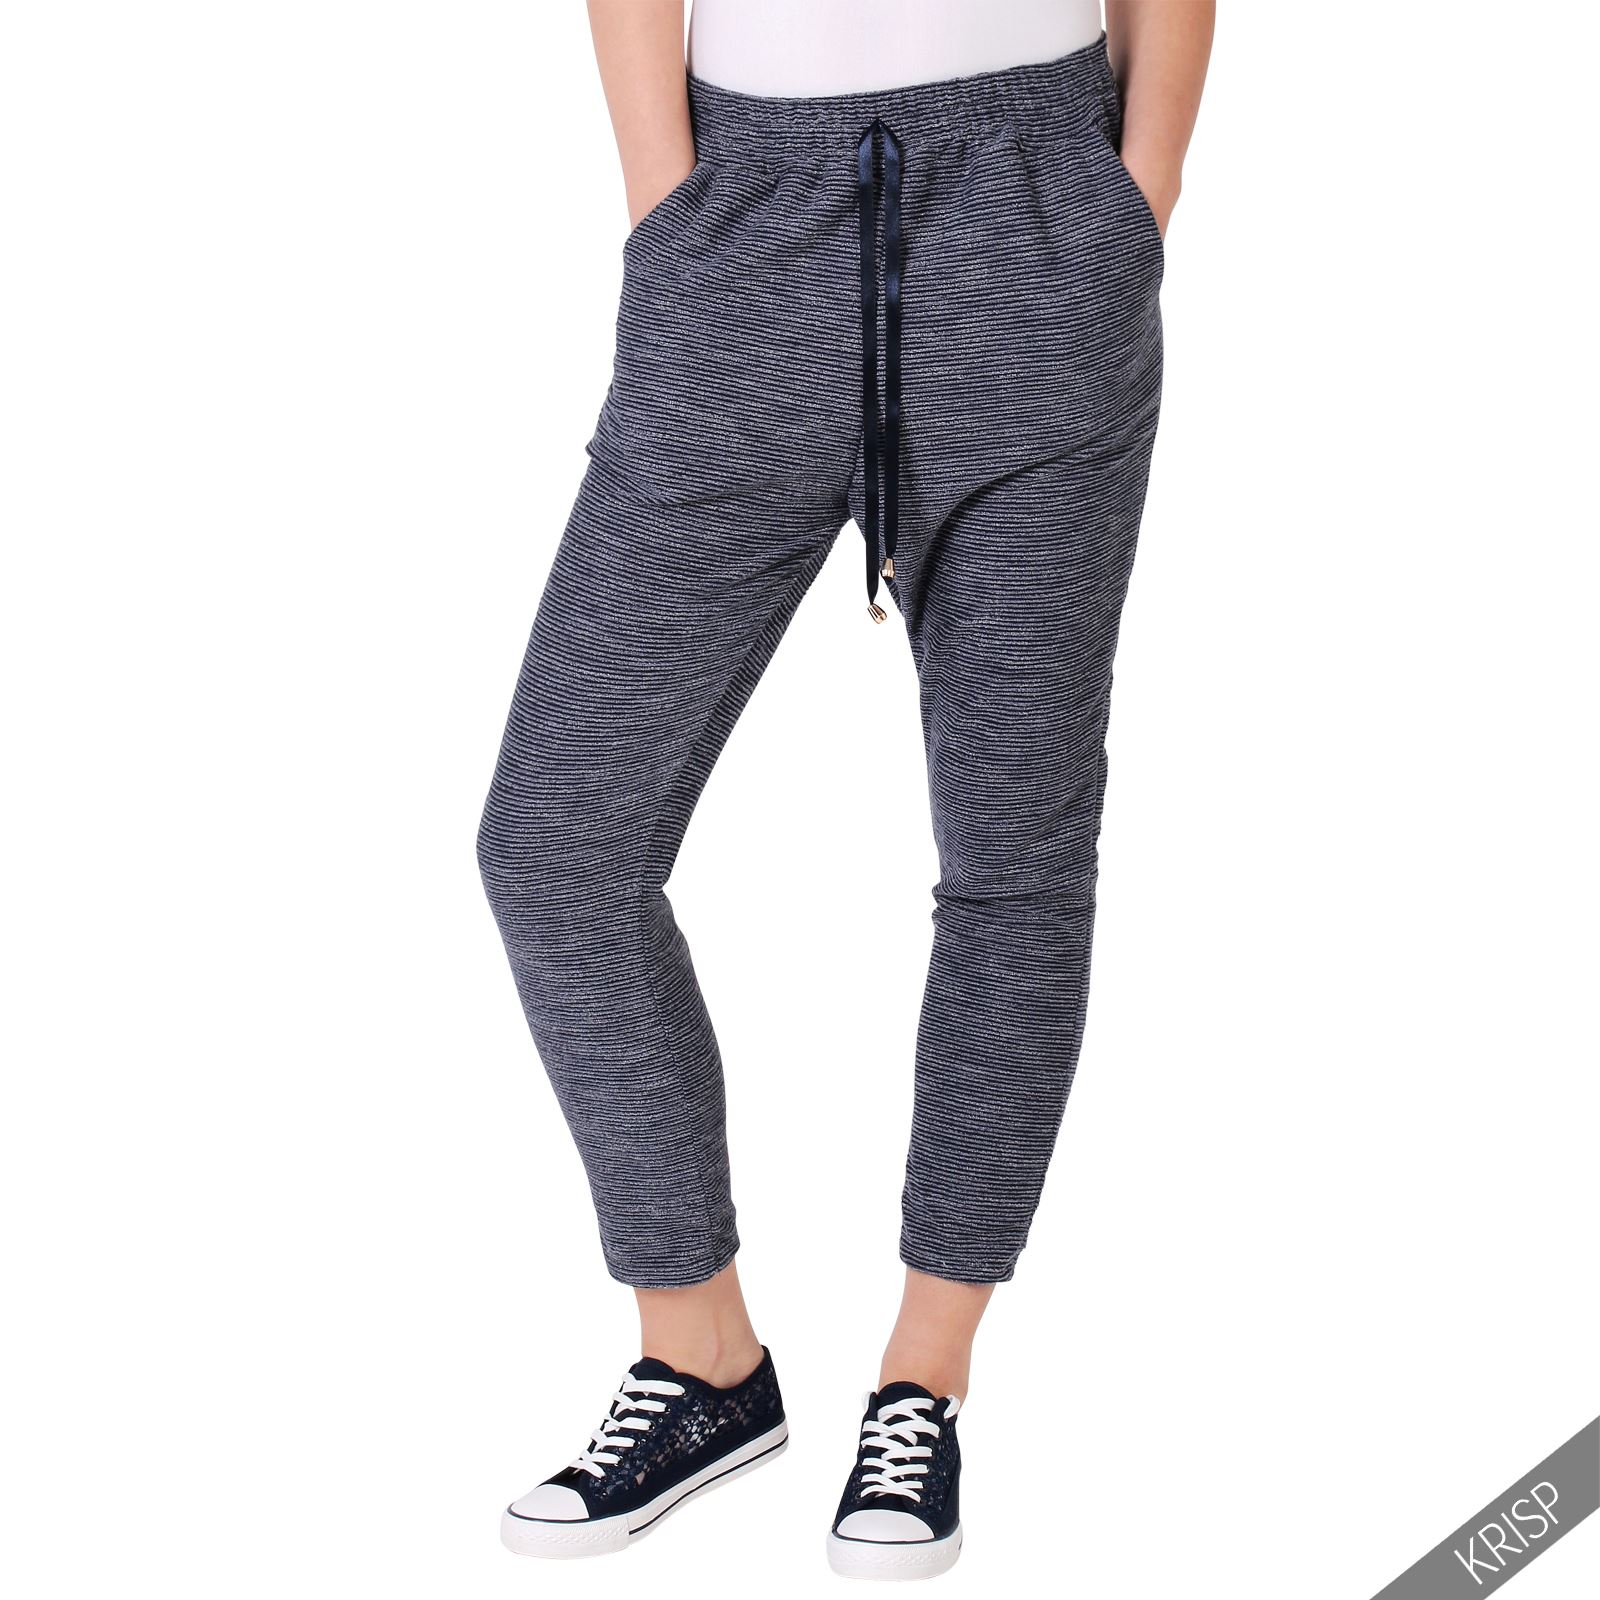 Excellent Travel Pants Travel Clothing For Women And Travel Clothing On